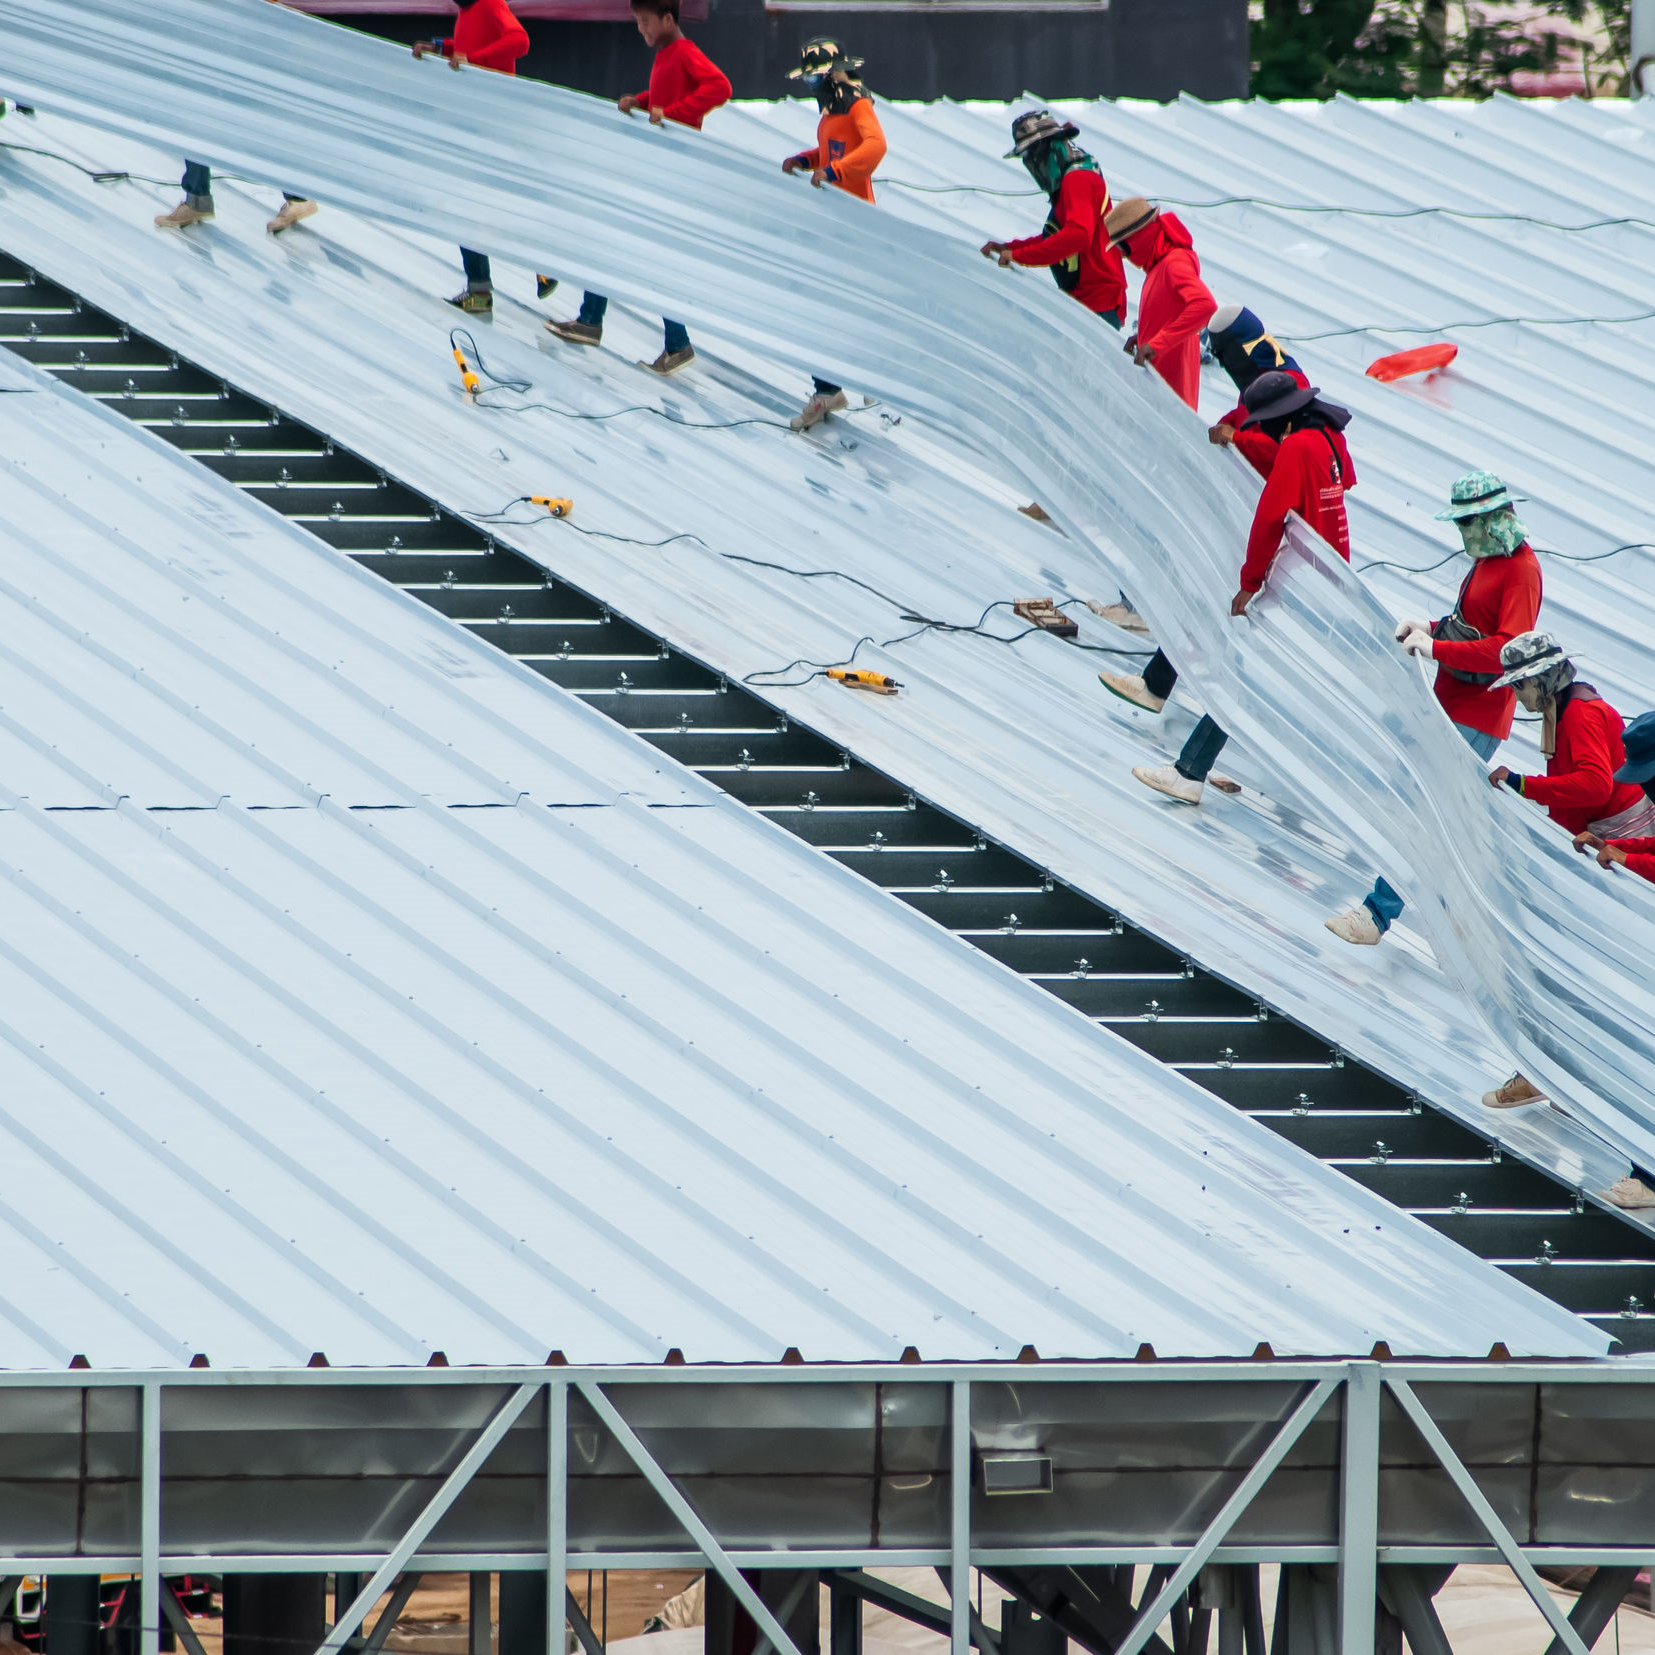 Roofers installing a commercial metal roof.